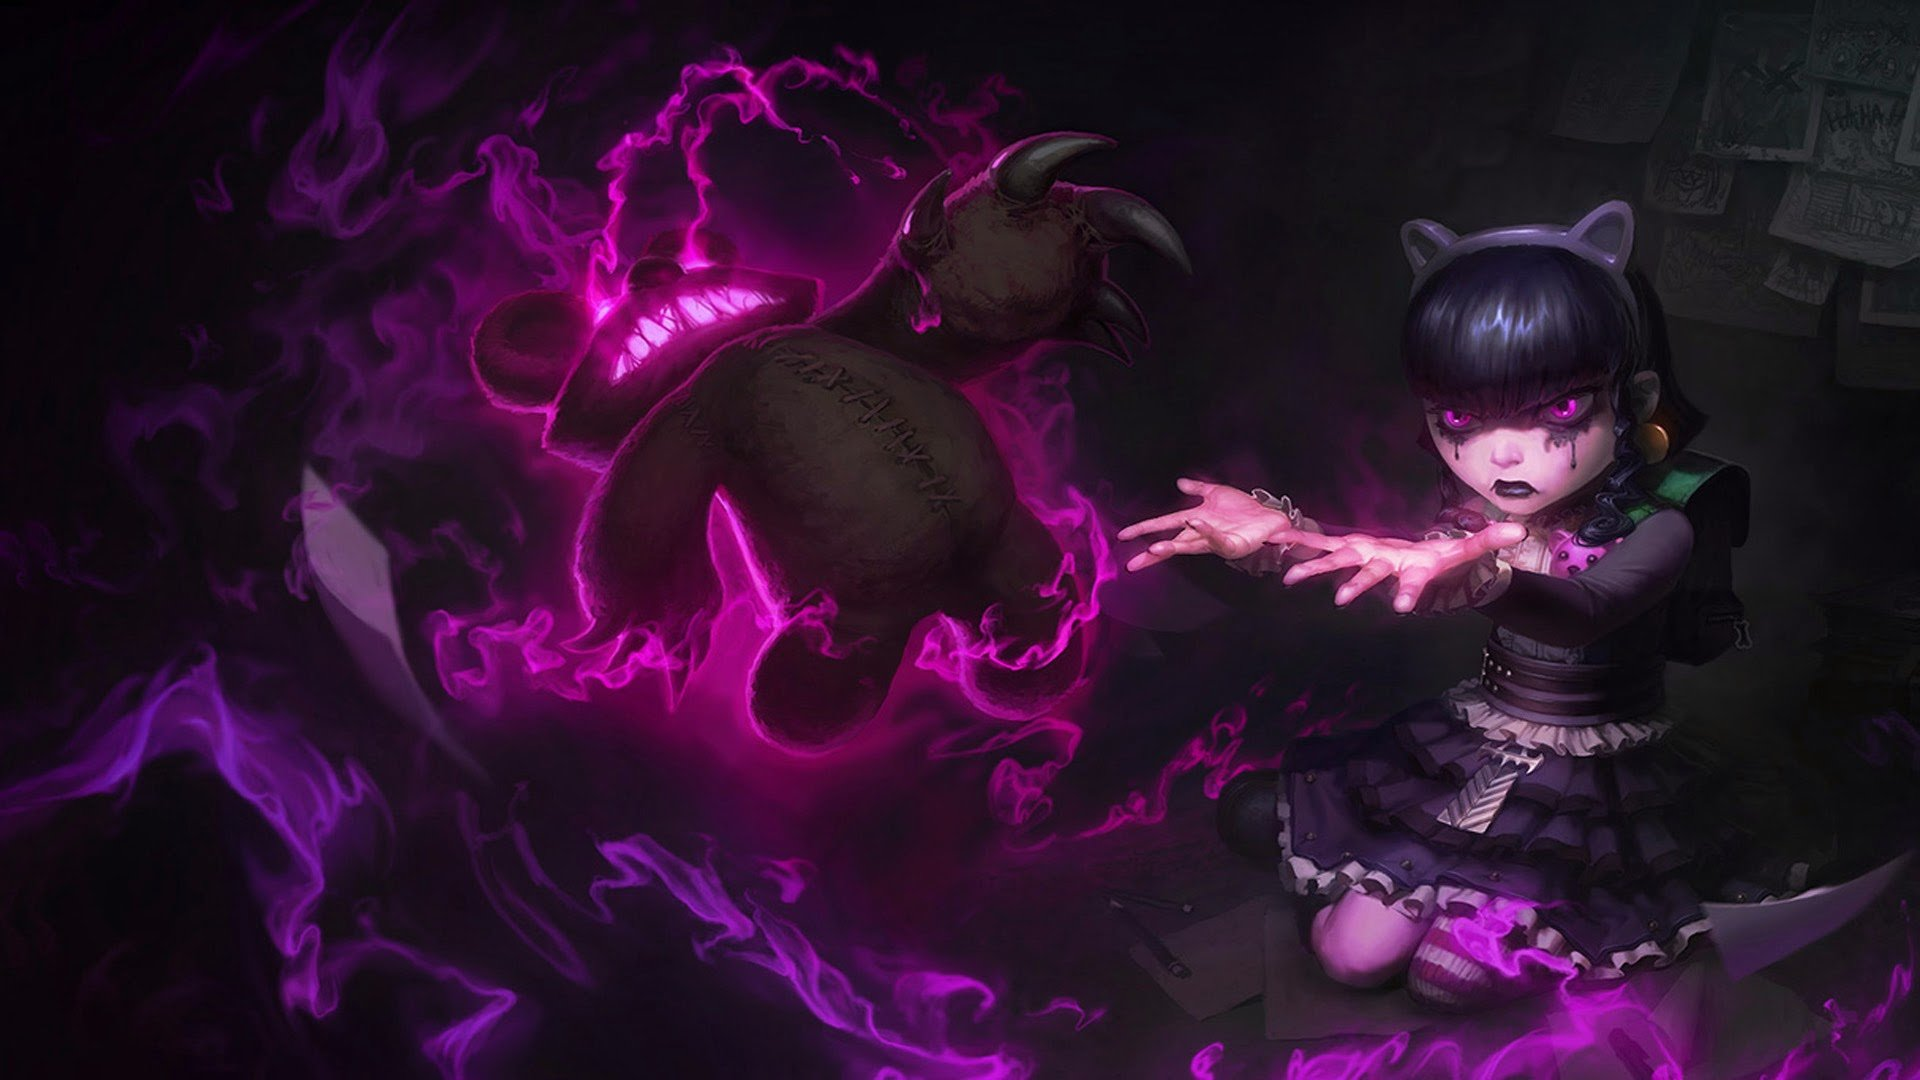 Annie League Of Legends Wallpapers 1920x1080 Full Hd 1080p